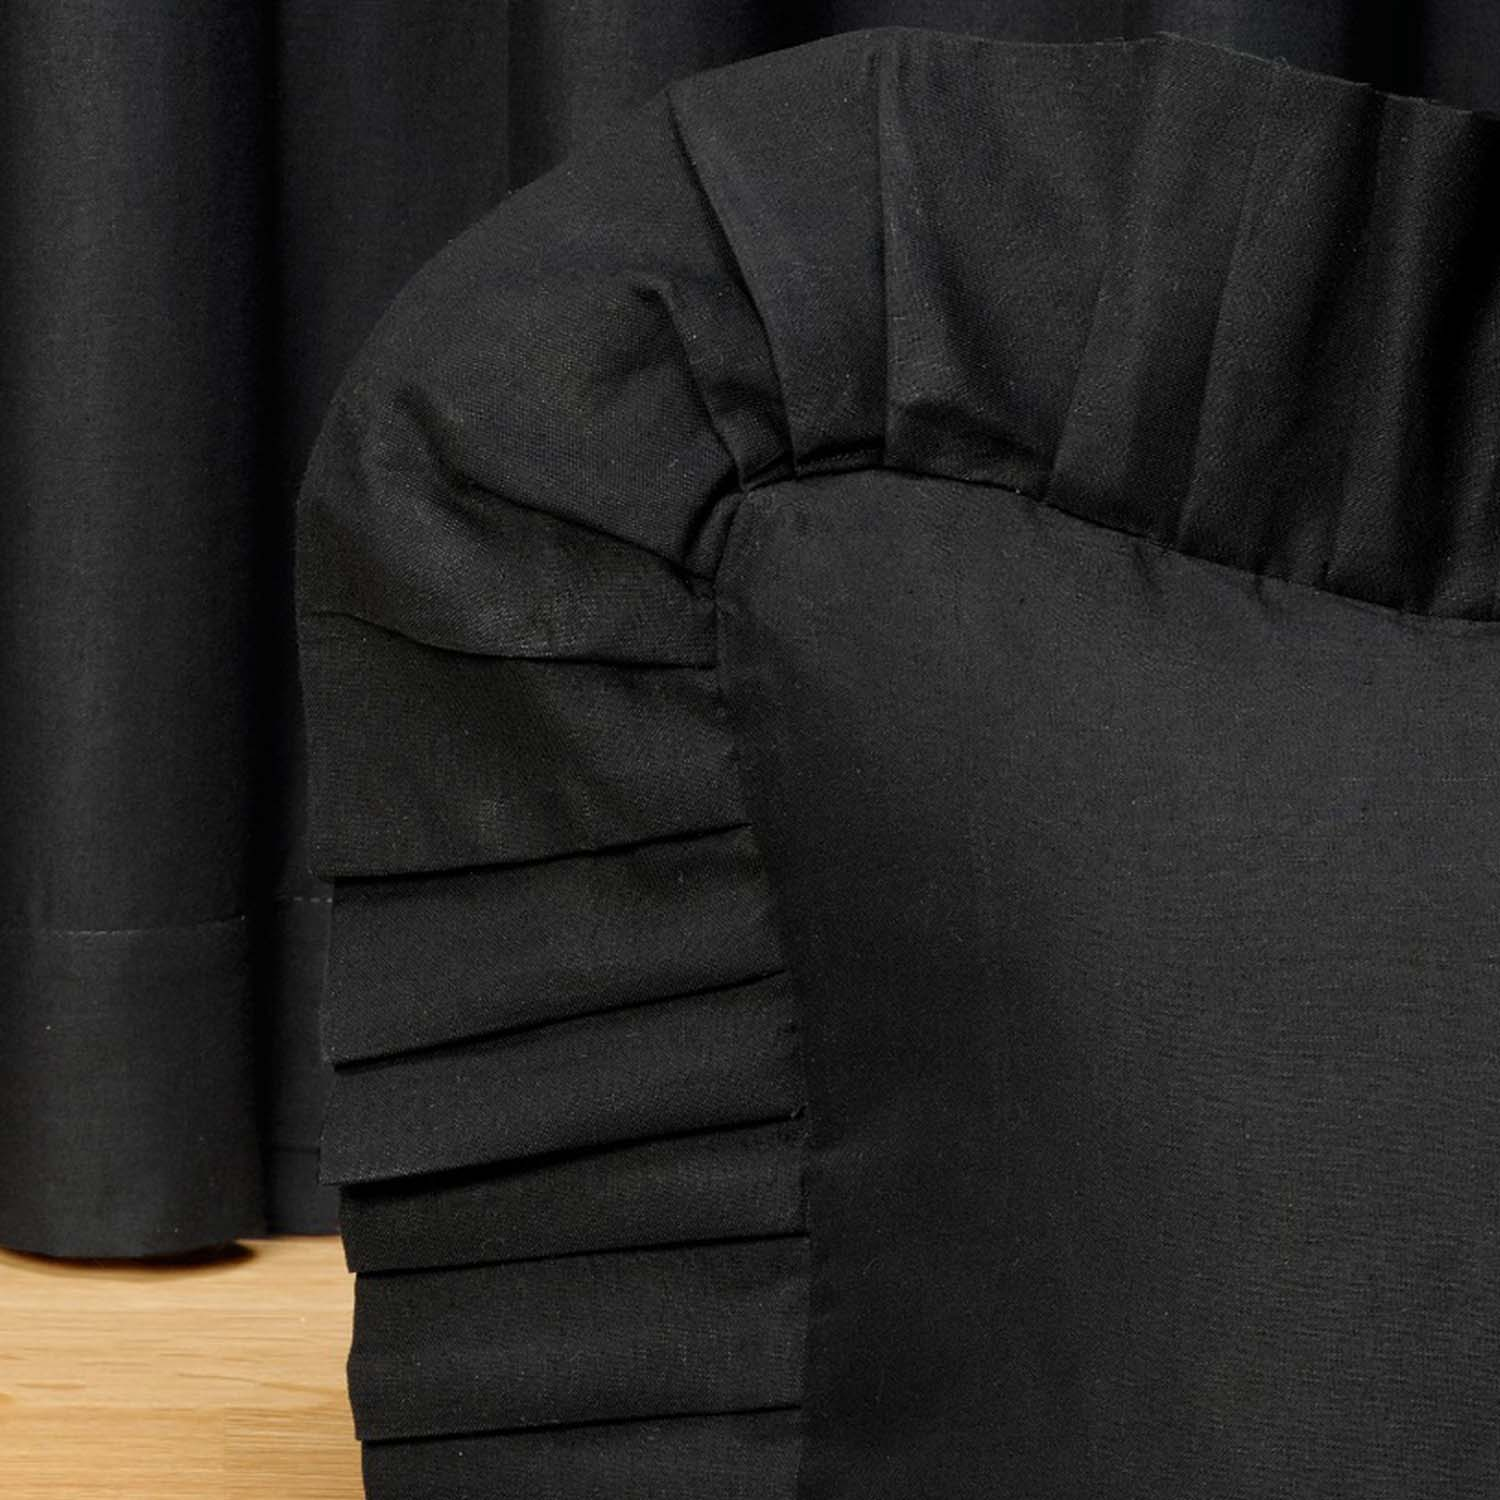 Forest Square Black Night Ruffled Euro Sham Euro Shams By Donna Sharp